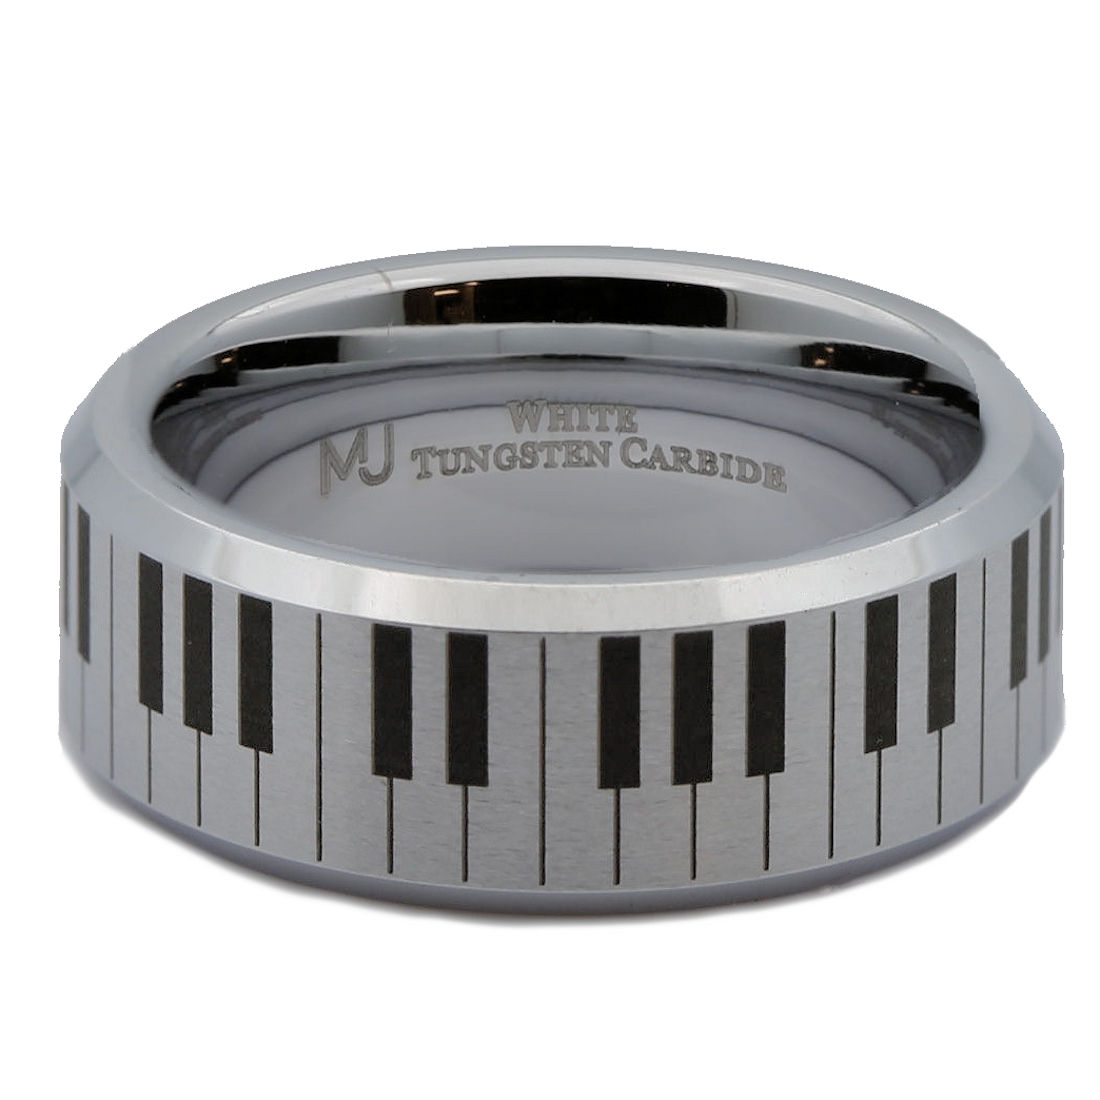 6mm-Brushed-White-Tungsten-Carbide-Piano-Keyboard-Polished-Edges-Ring-Size-10 thumbnail 17